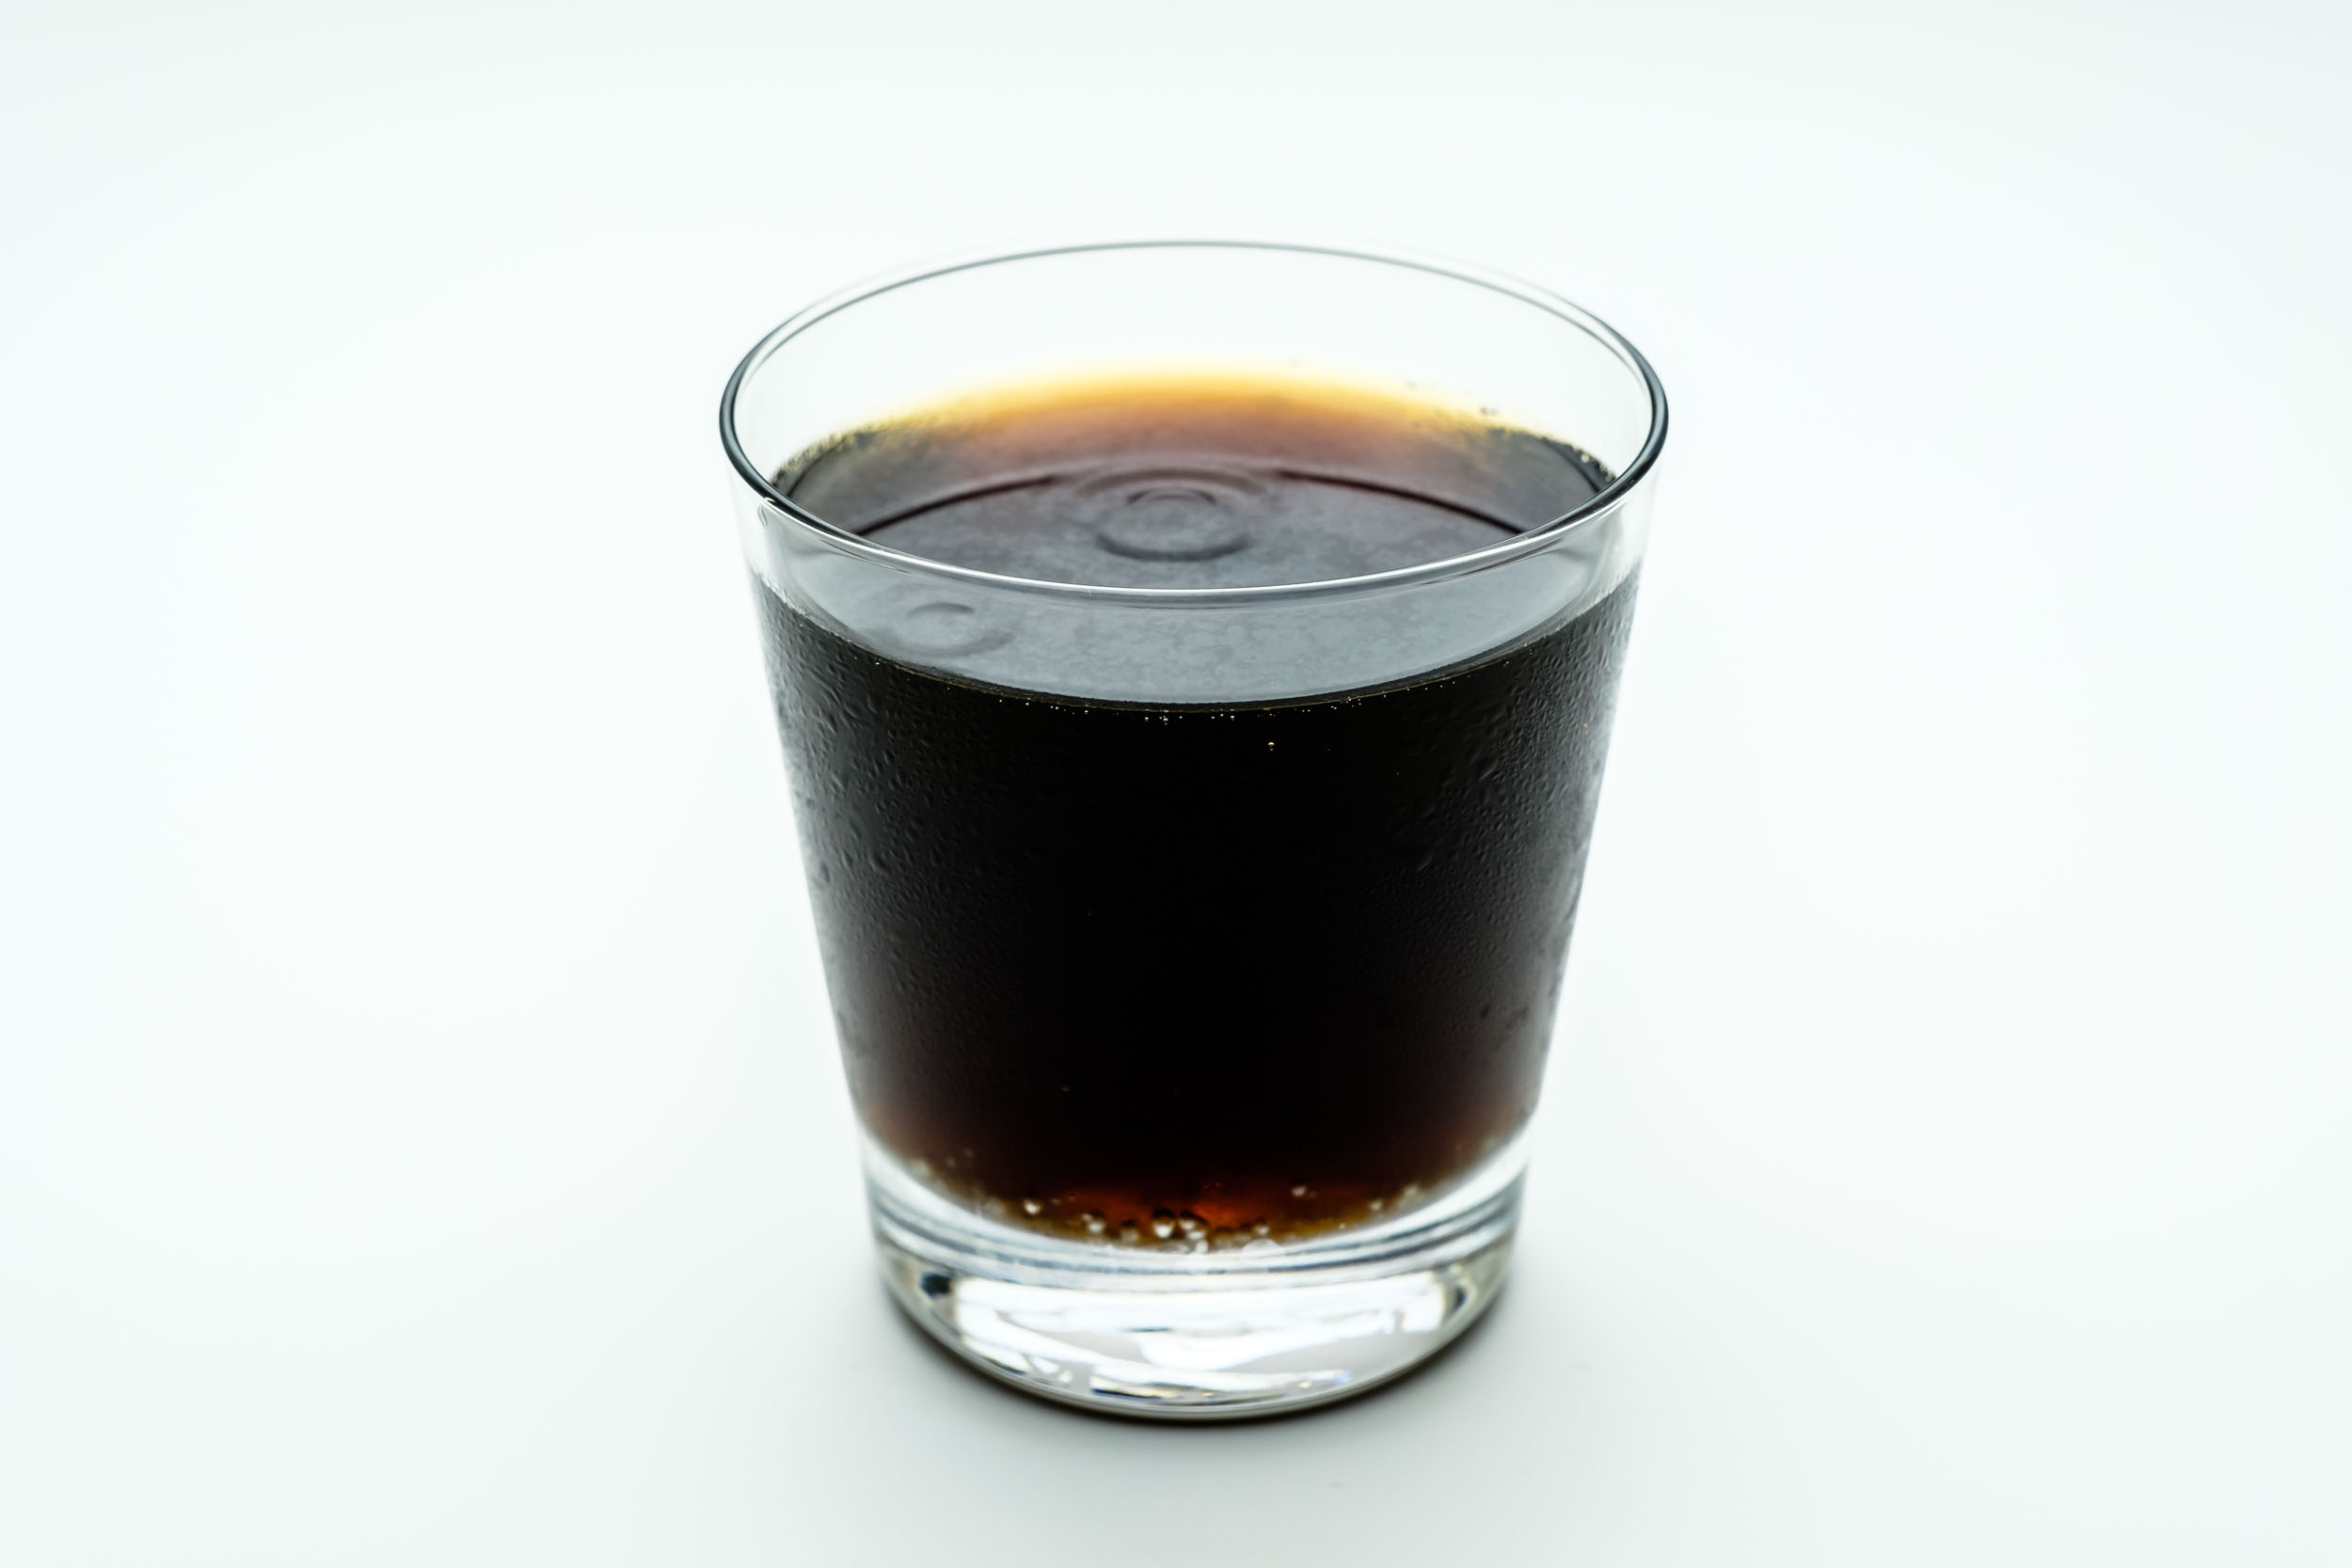 I think the colour of Coca-Cola Coffee Plus looks exactly like regular Coca-Cola does